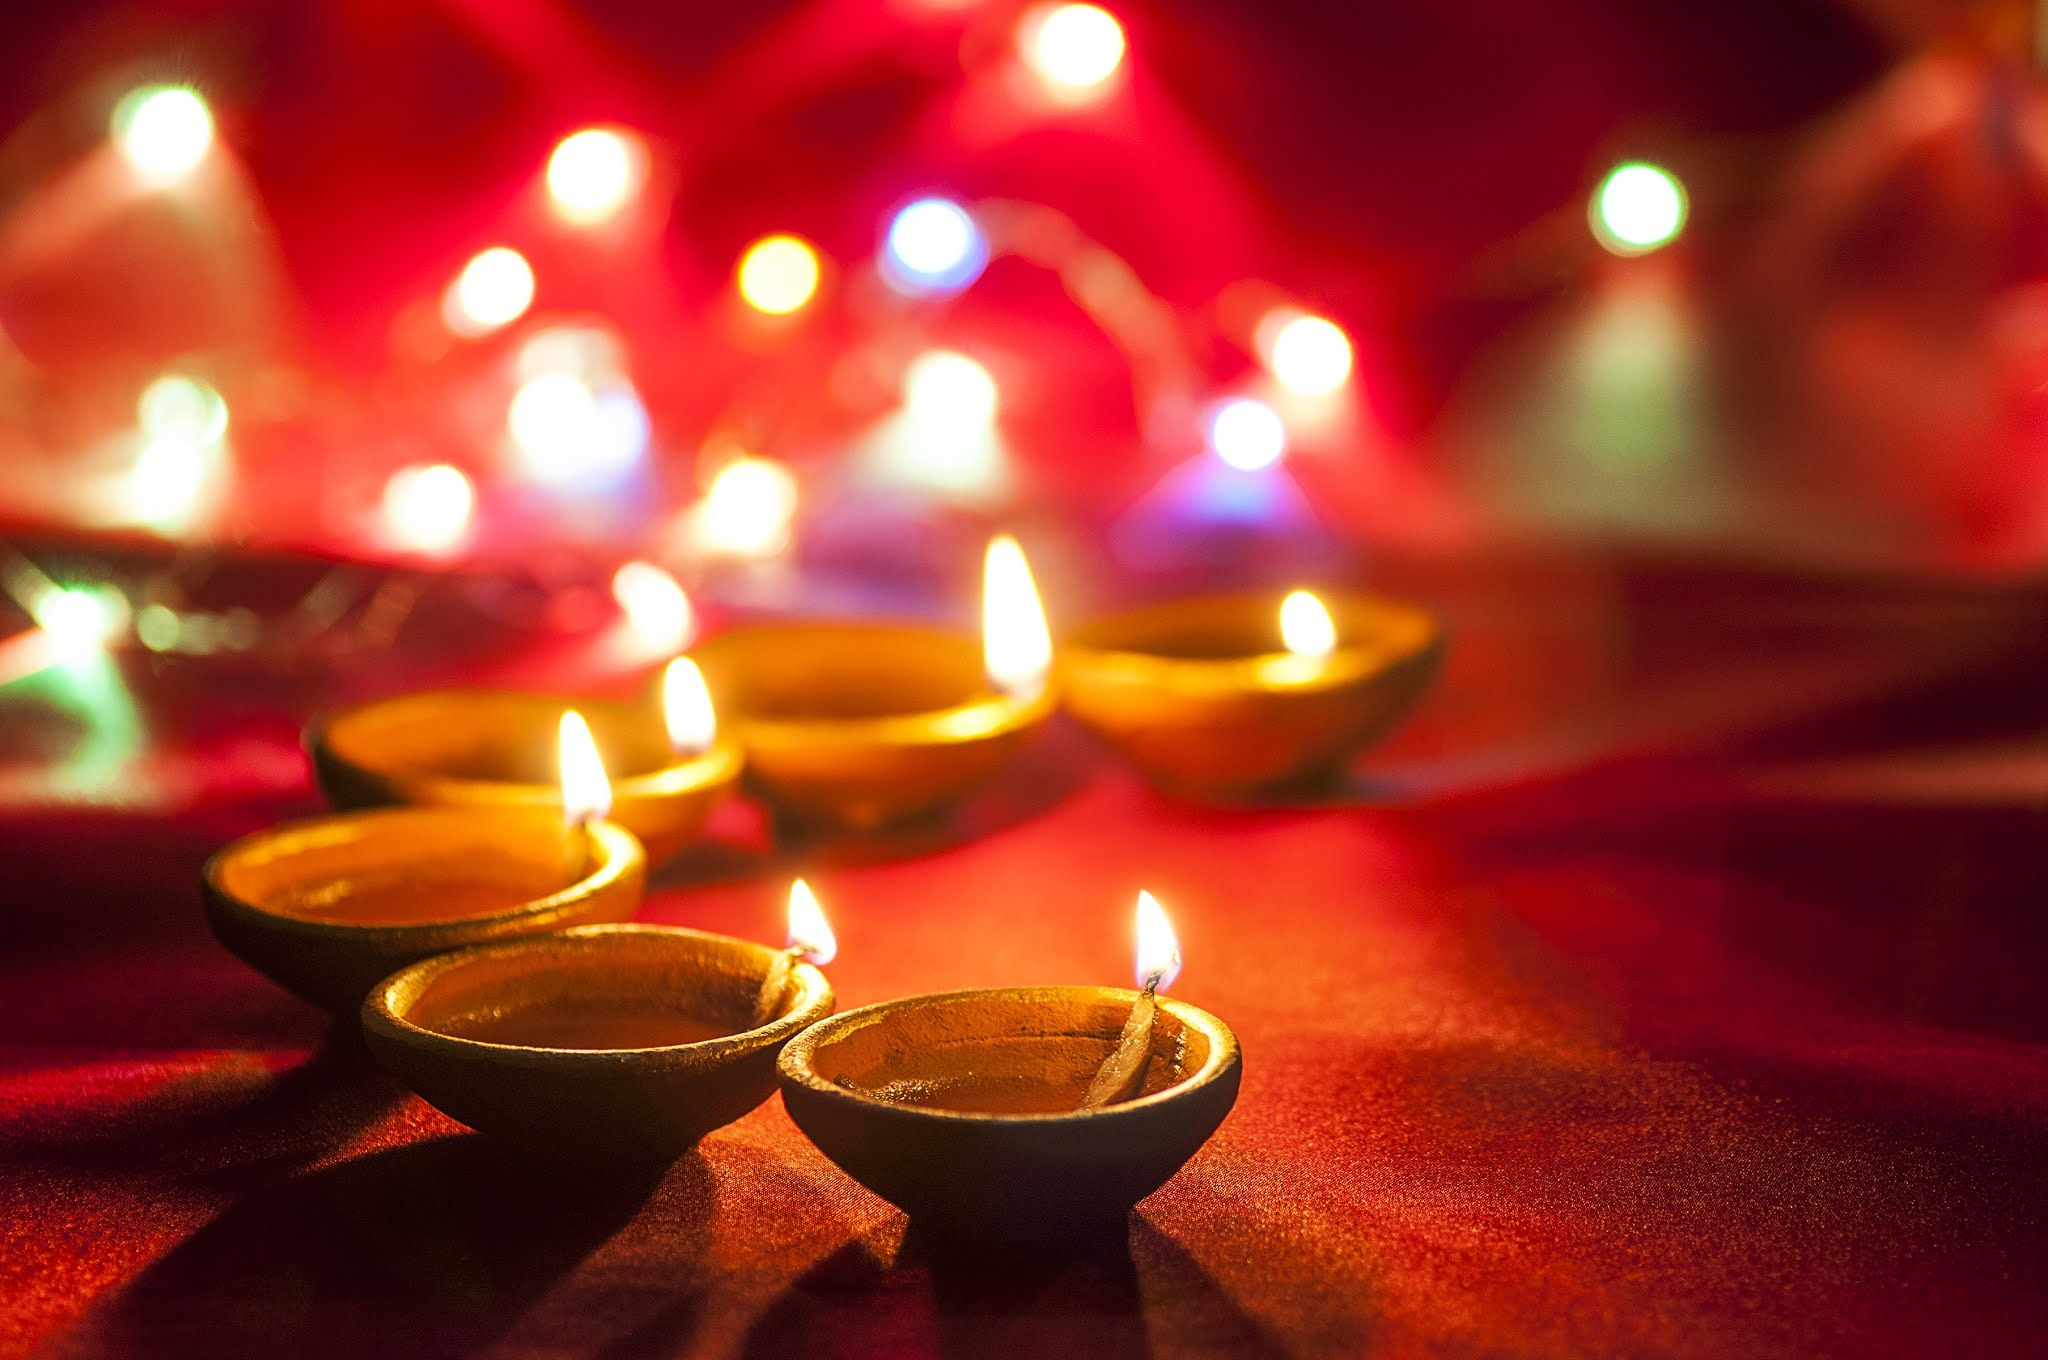 Happy Diwali 2018 WhatsApp Messages, Wishes, Greetings, Images